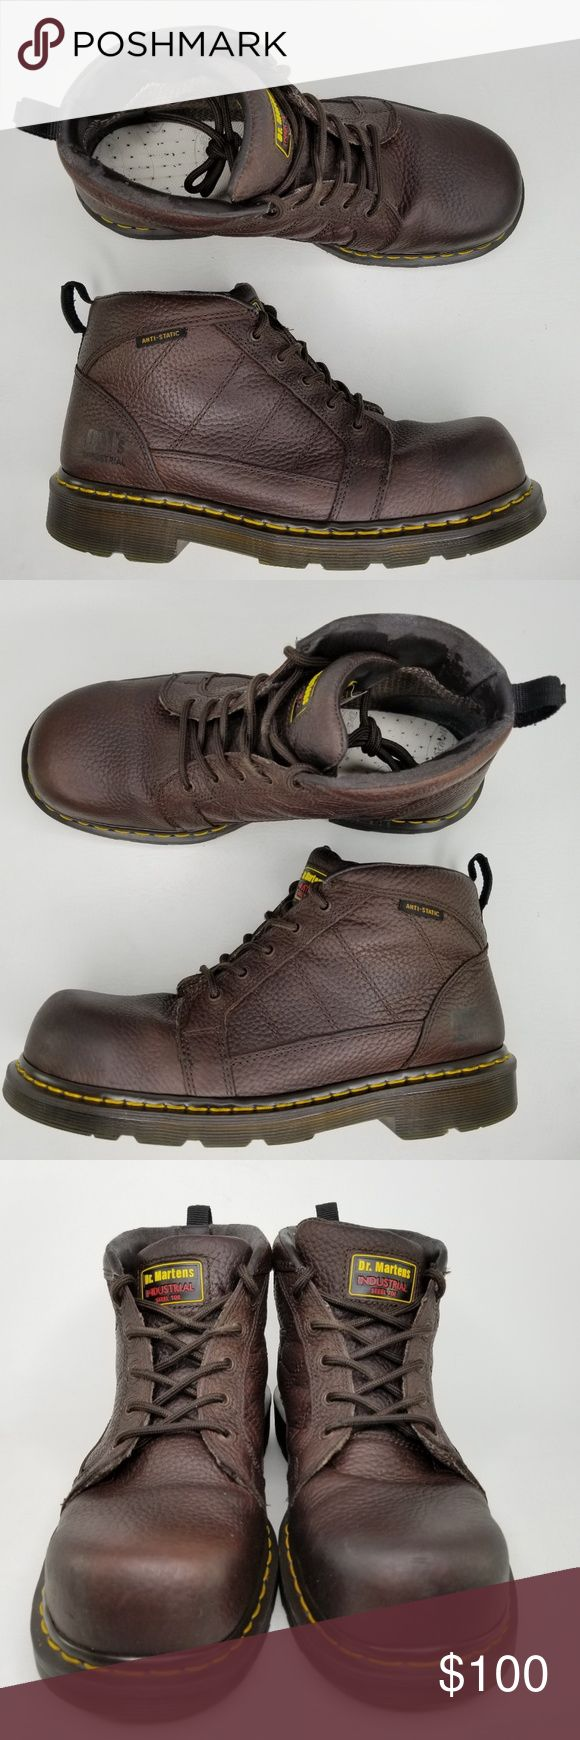 Dr. Martens Reactor Safety Toe 5Eye Leather Boots in 2020